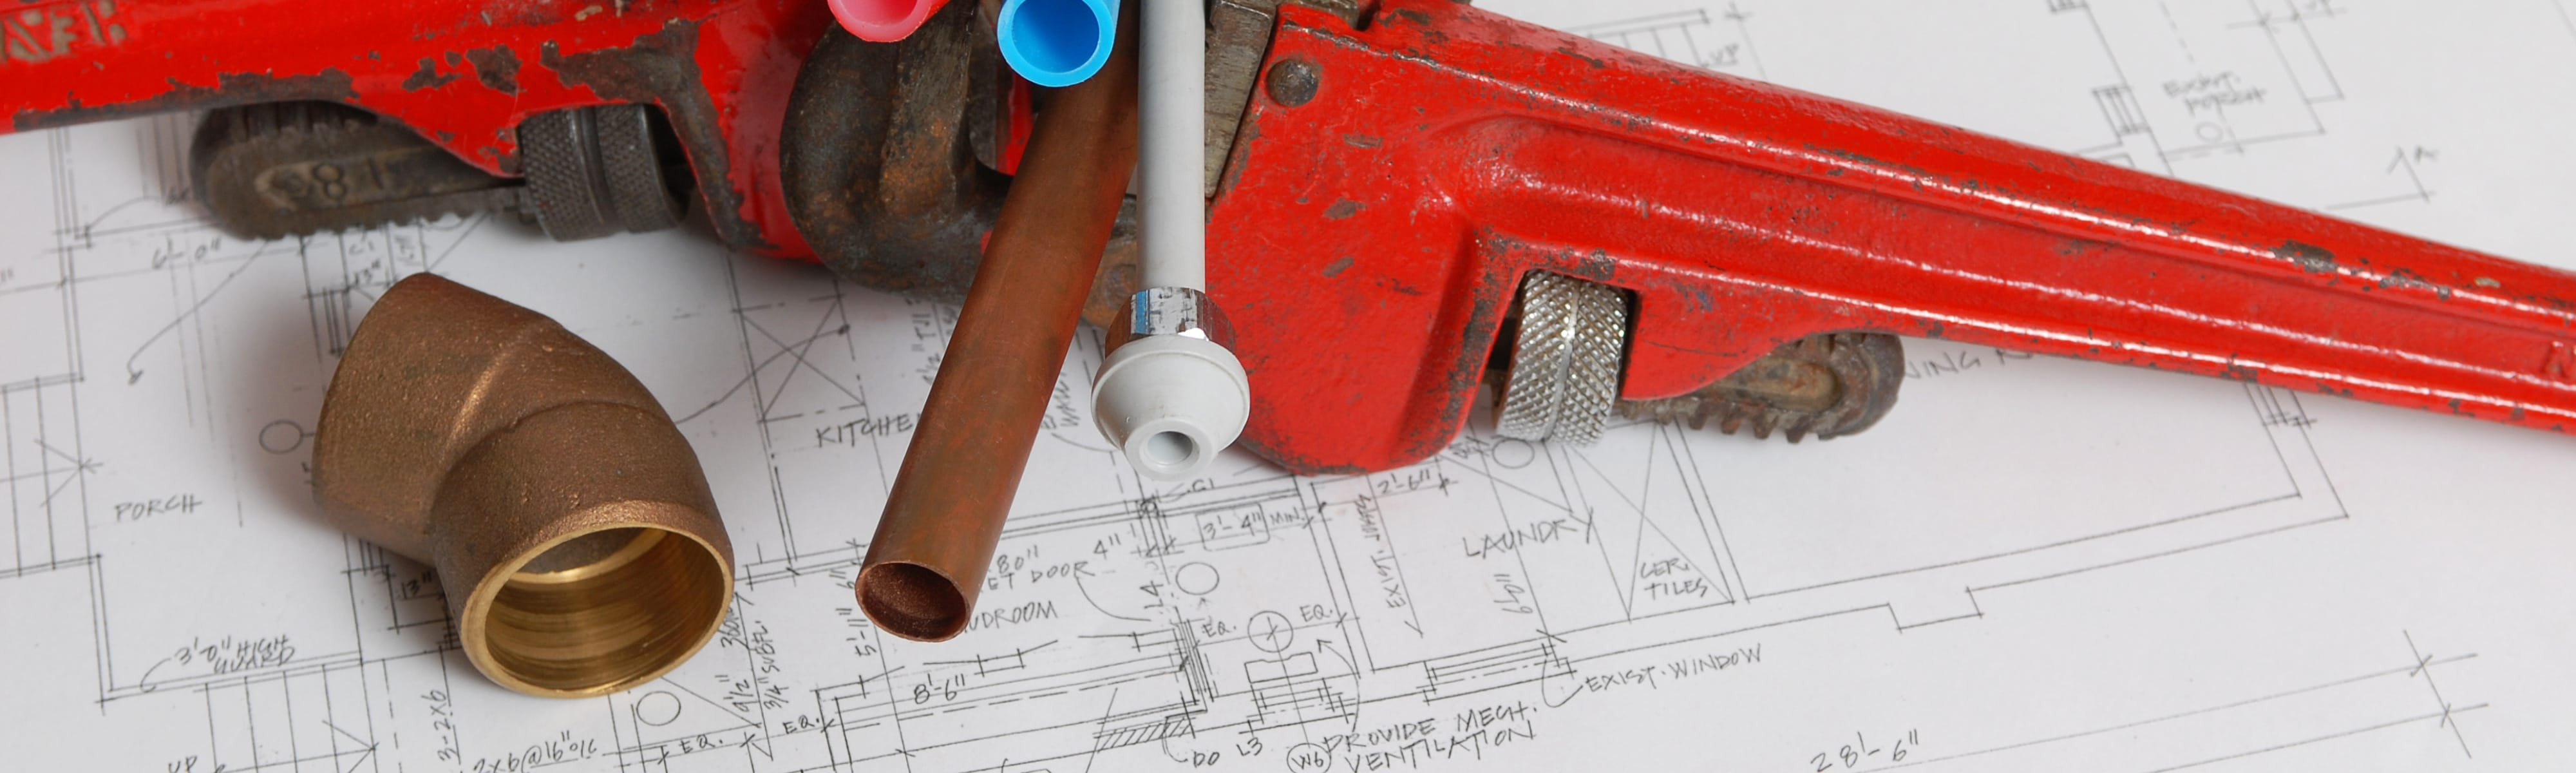 Tools on blueprints.